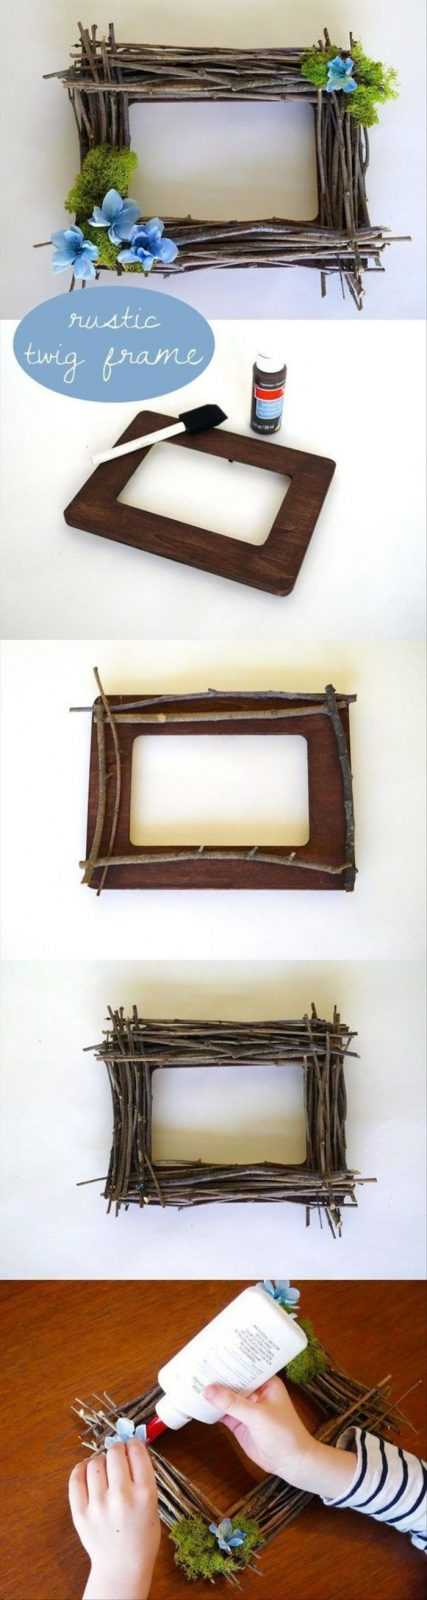 great diy project - simple-yet-great-diy-project-ideas-006